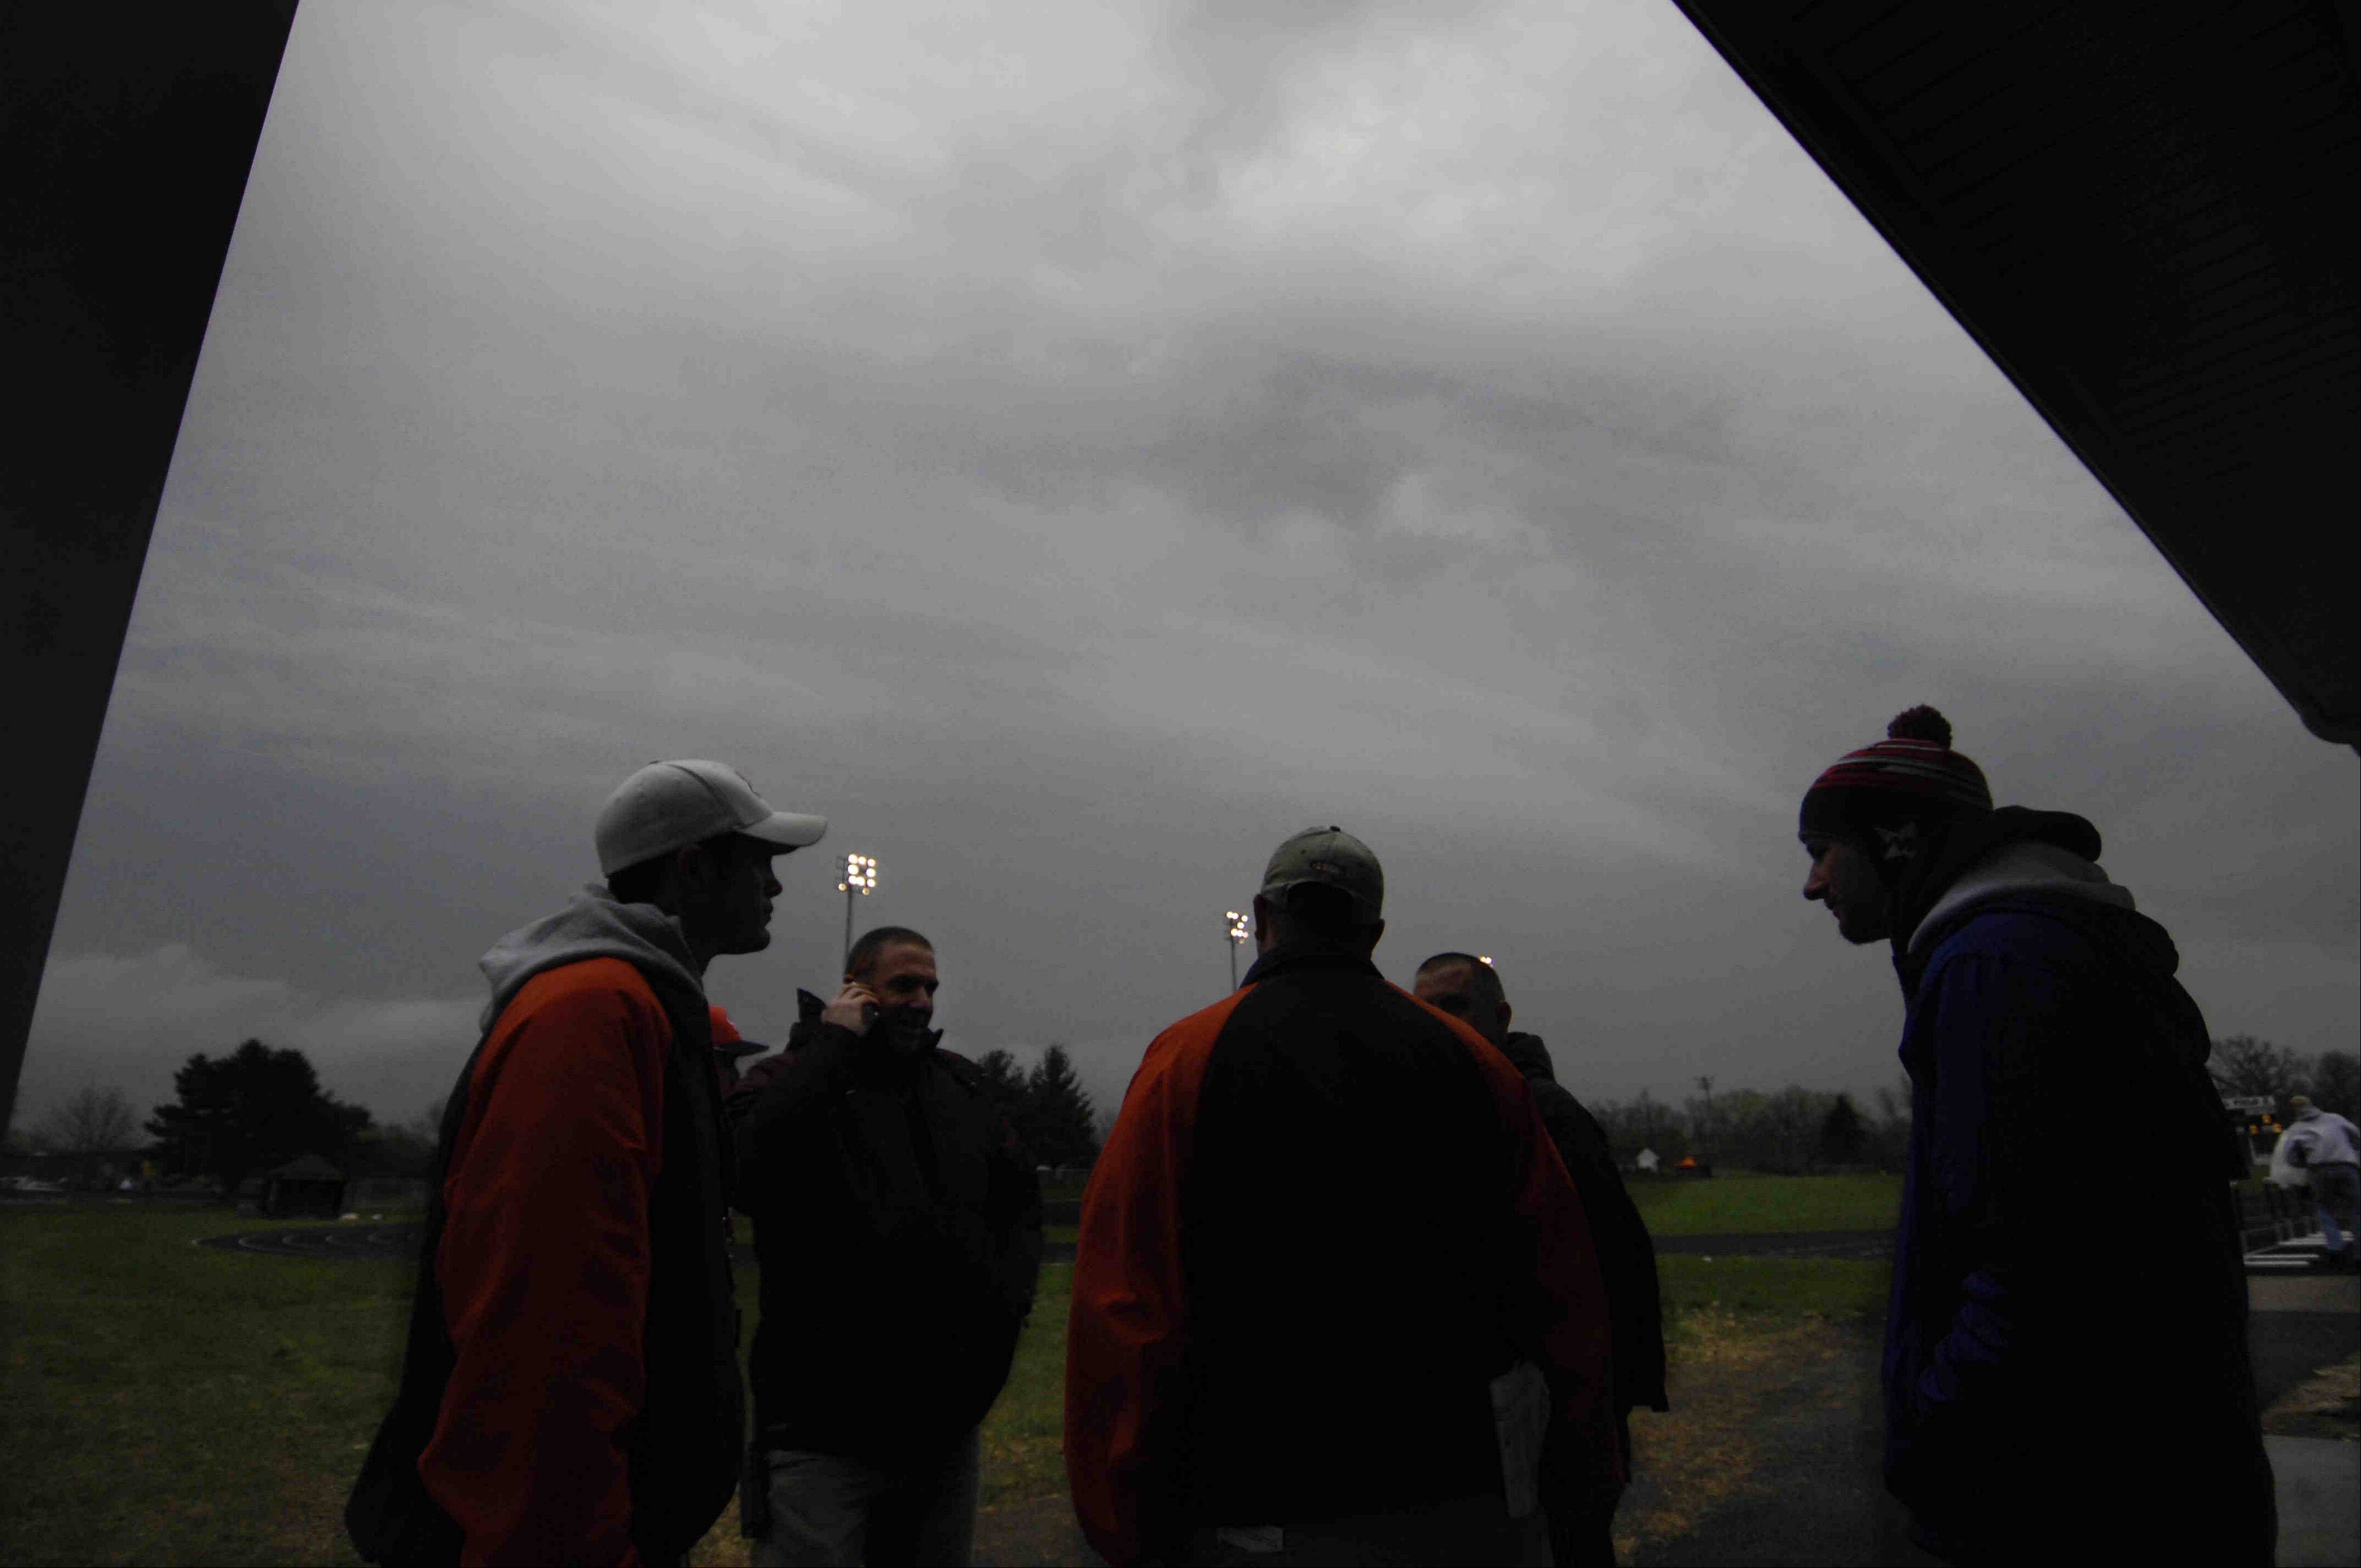 Elgin Athletic Director Paul Pennington, second from left, talks on the phone under ominous clouds as coaches gather to make a decision about trying to continue the Upstate Eight Conference girls track meet at Memorial Field at Elgin High School.